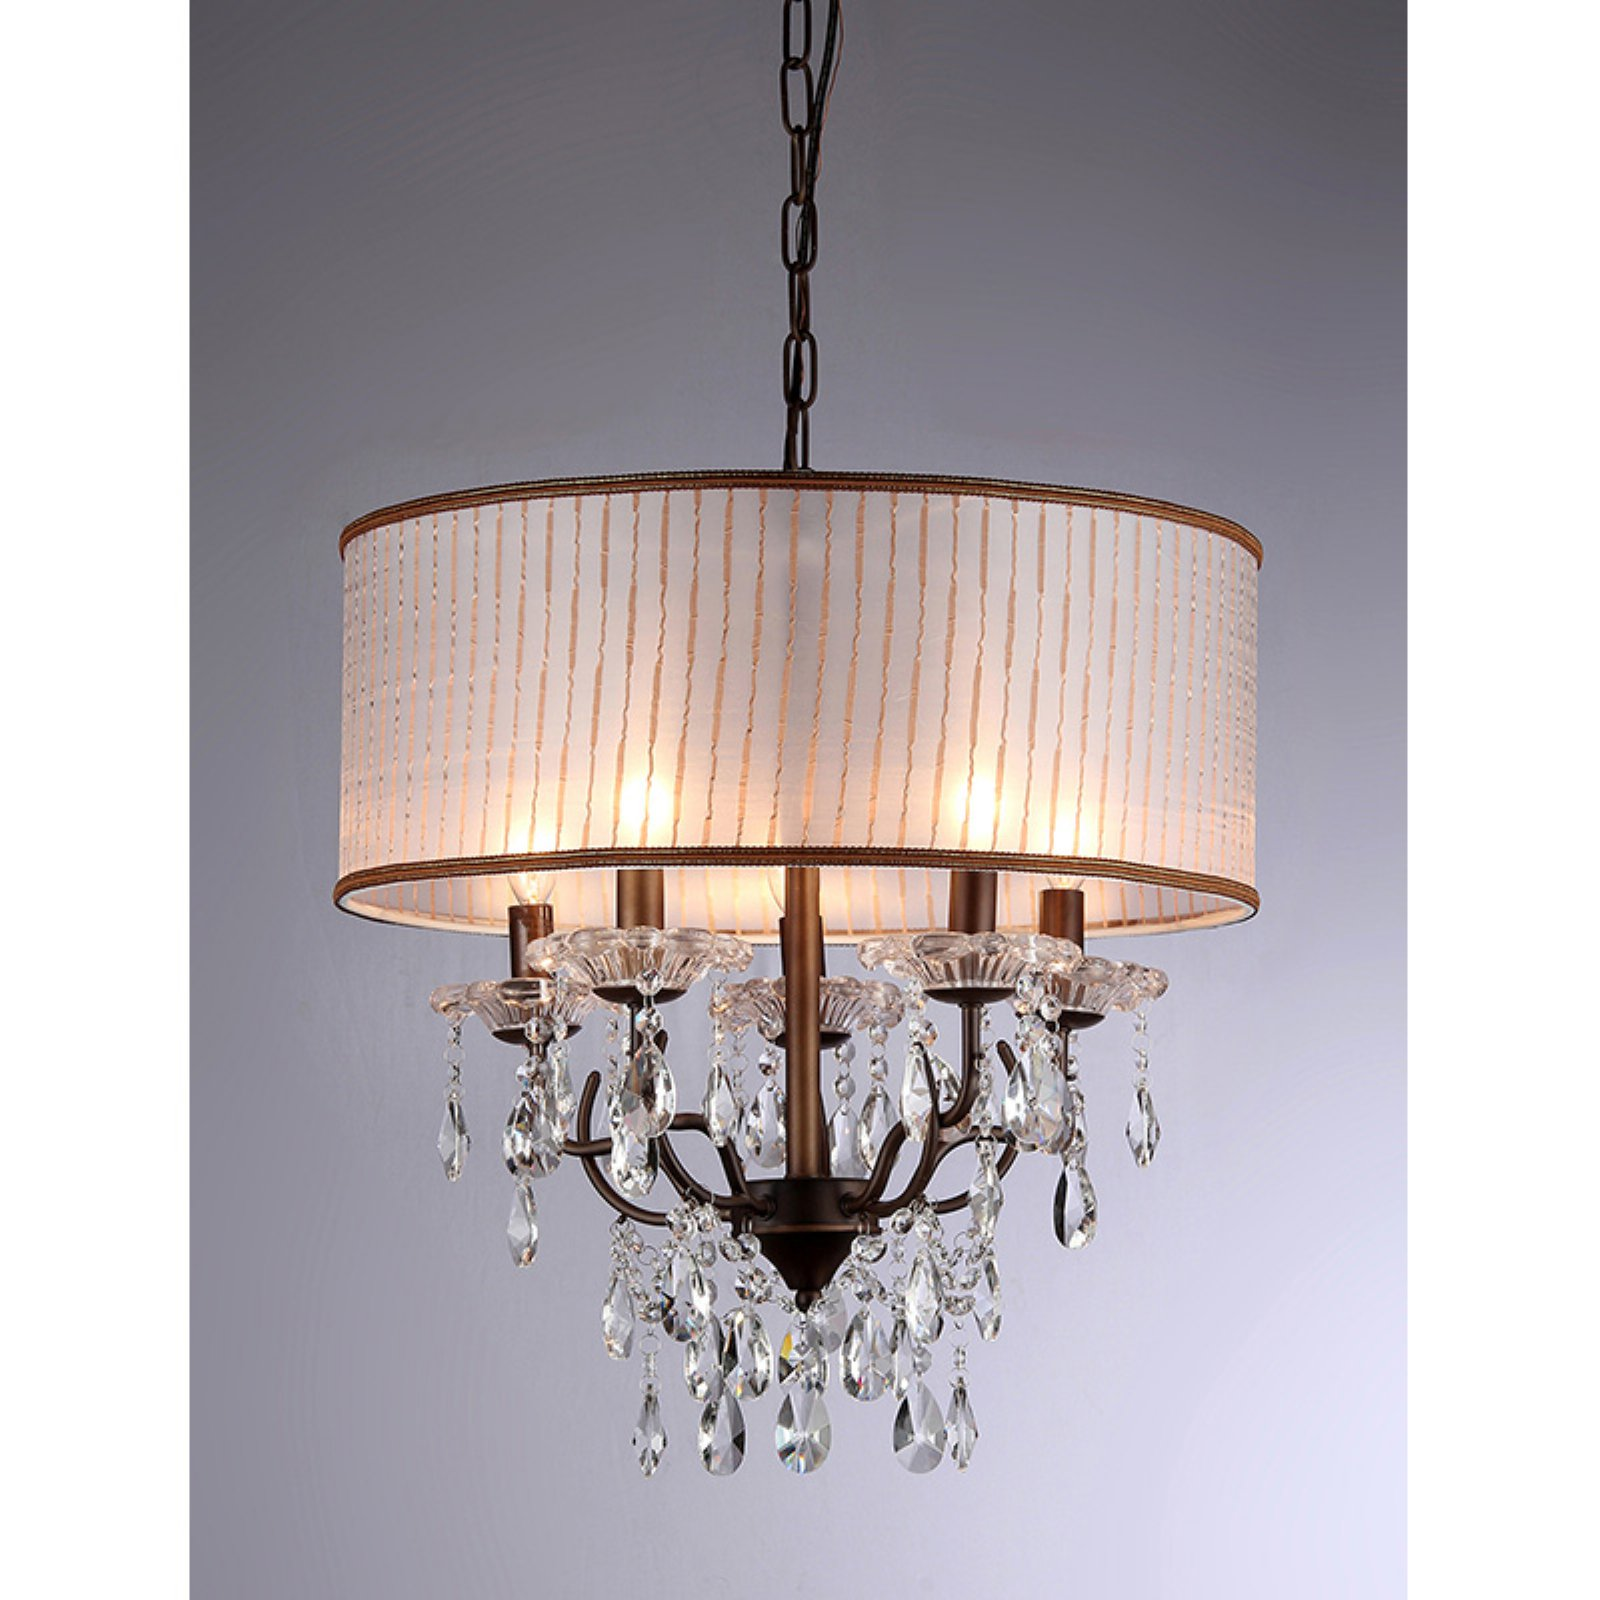 Warehouse of Tiffany Scott RL8072 Chandelier